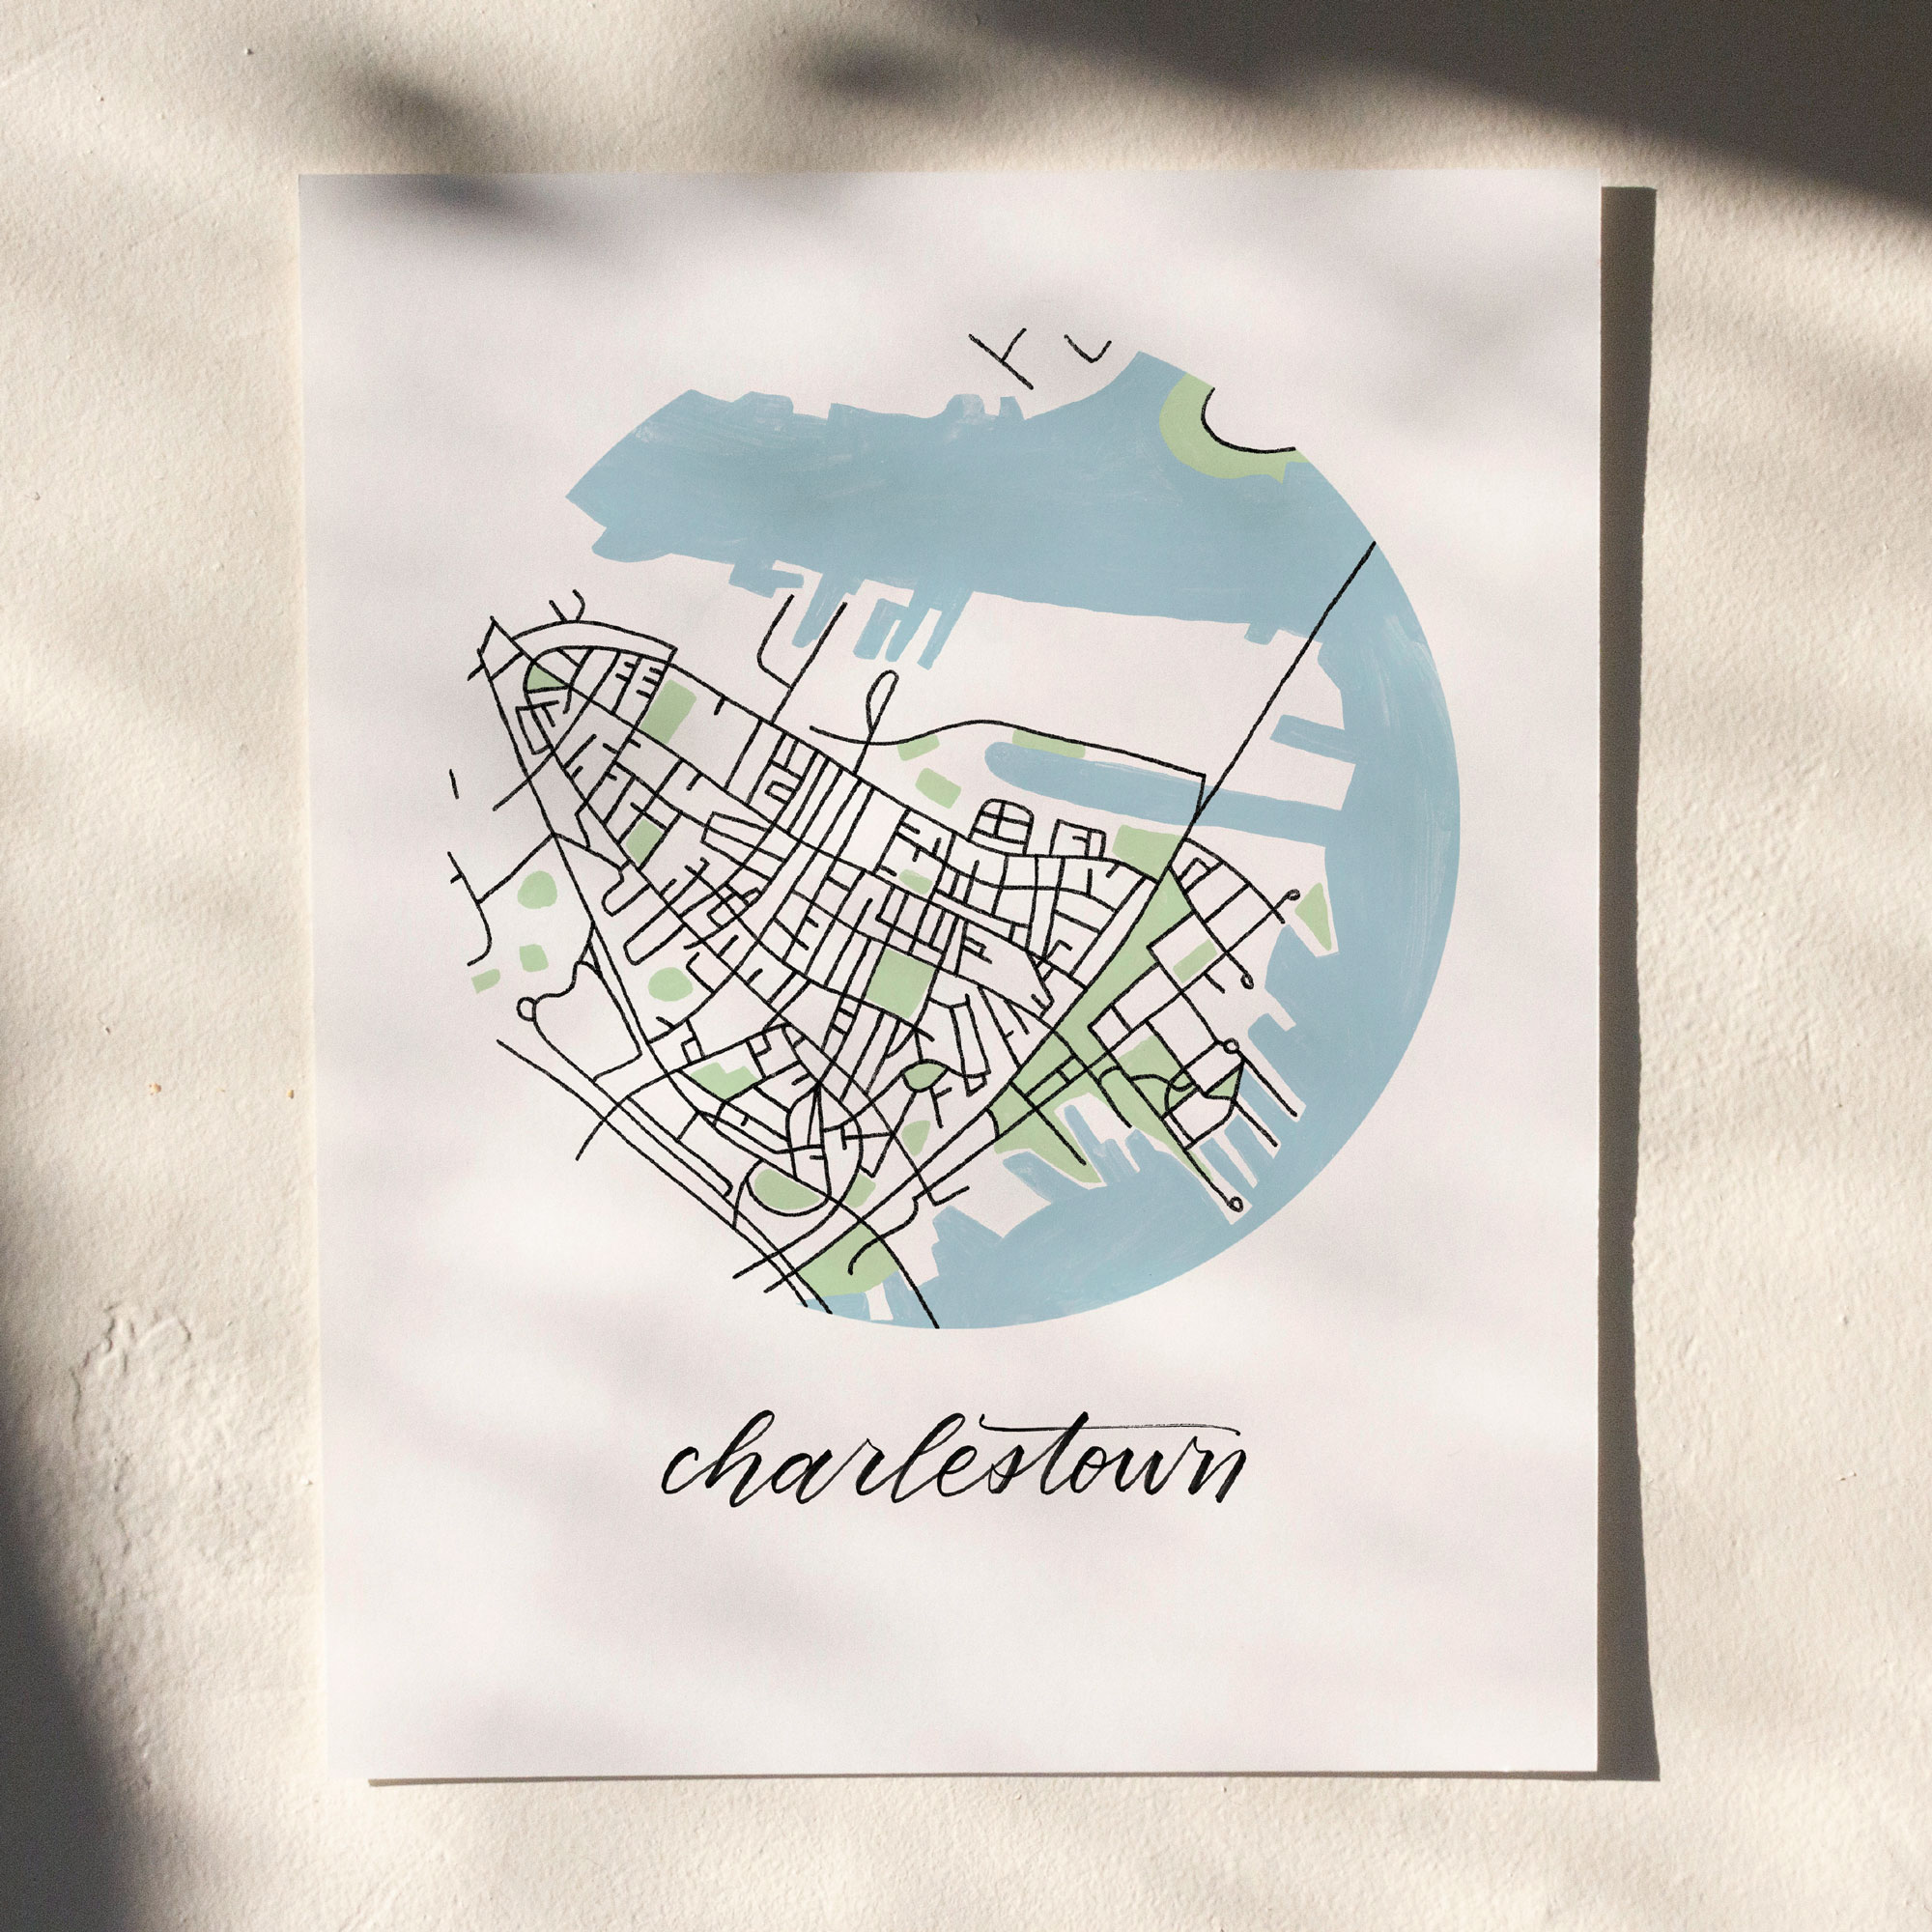 Charlestown, Boston Map Print hanging on white wall with leaf shadows across the image